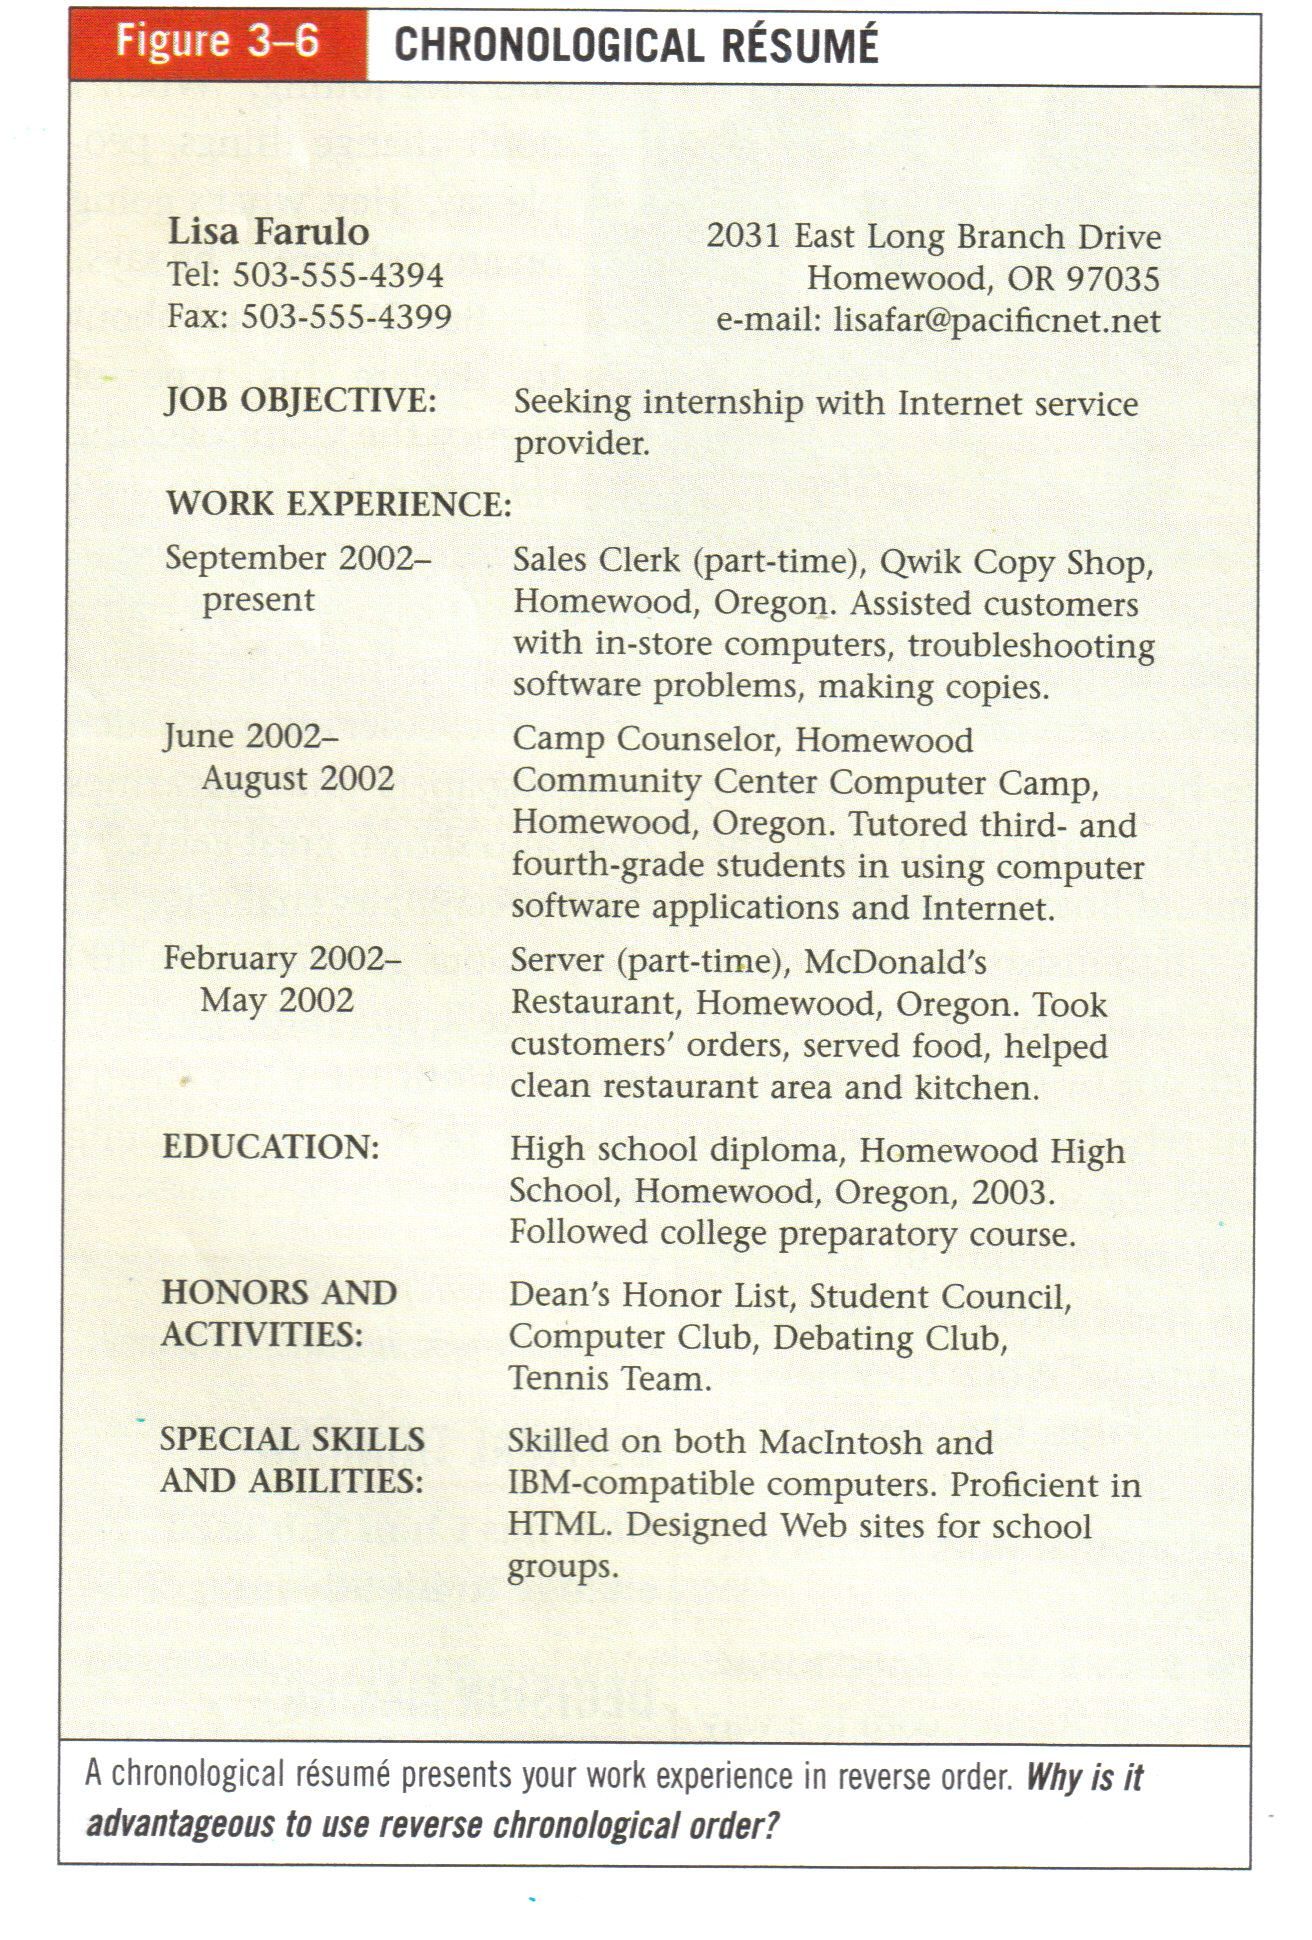 Examples Of A Chronological Resume Sample Chronological Resume Career Development Teaching Ideas